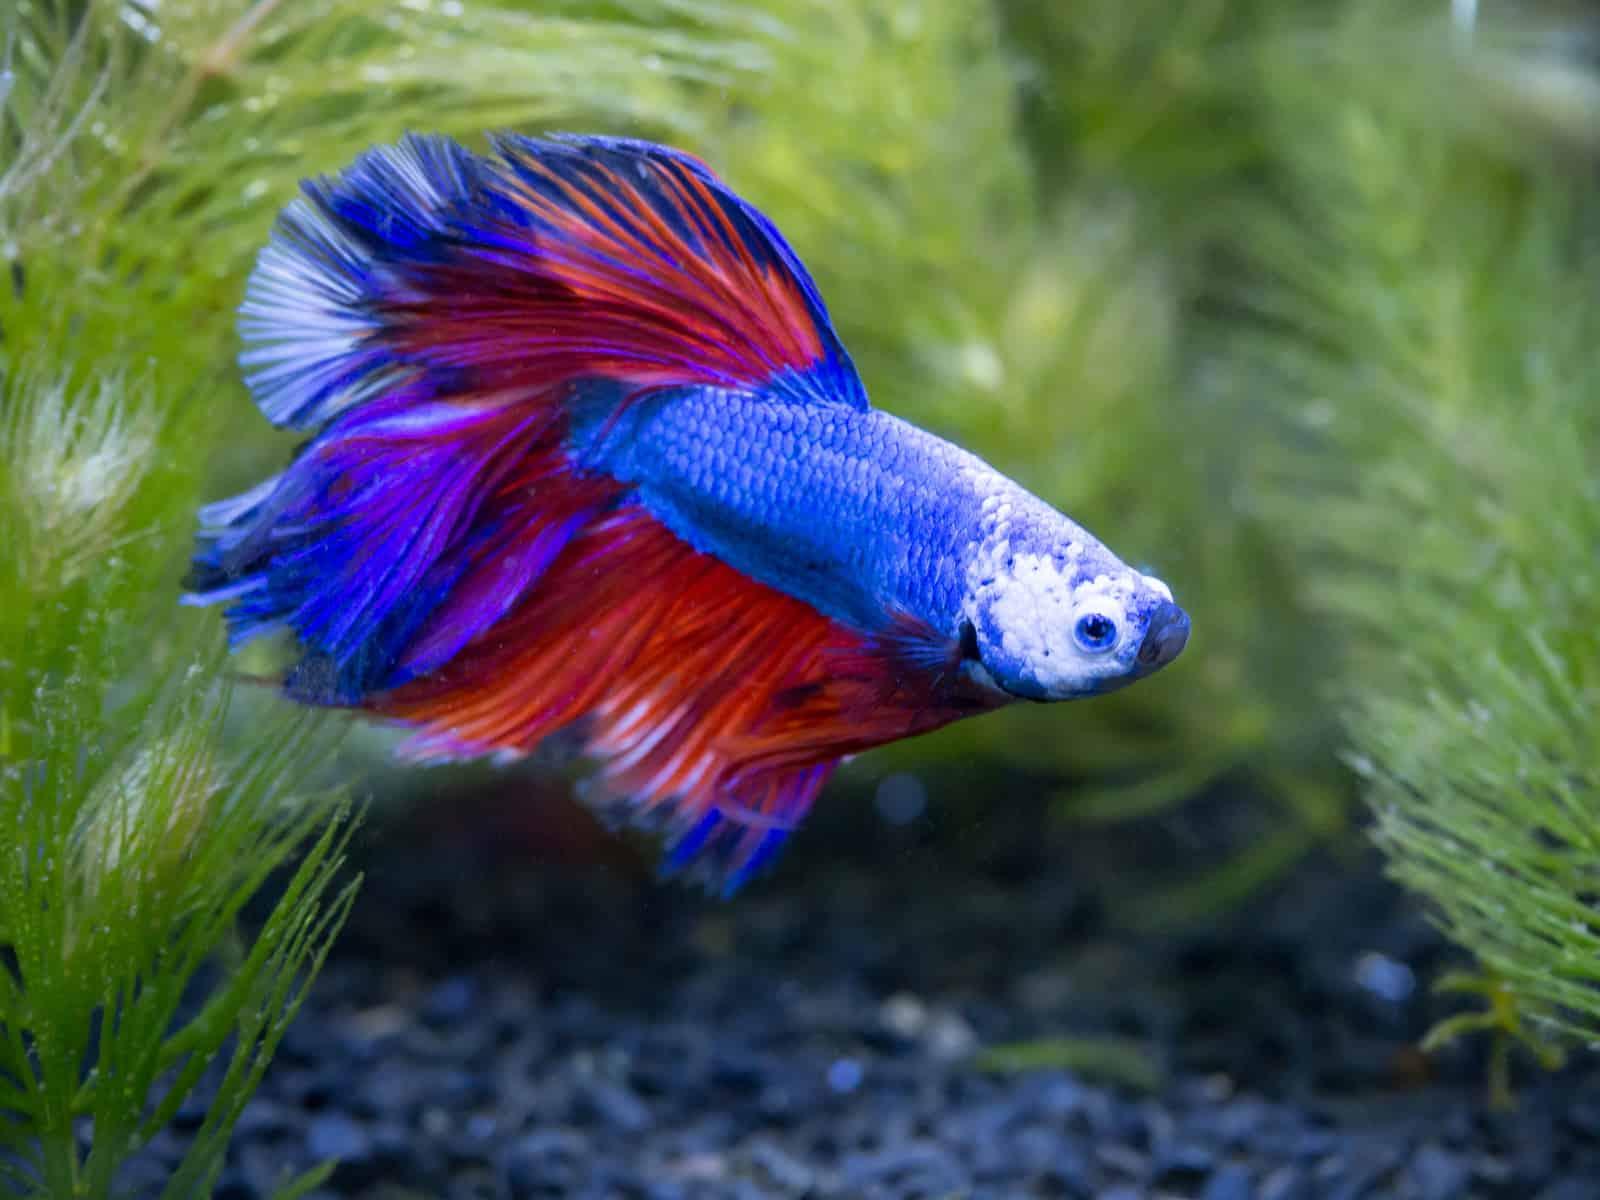 betta siamese fighting fish in aquarium